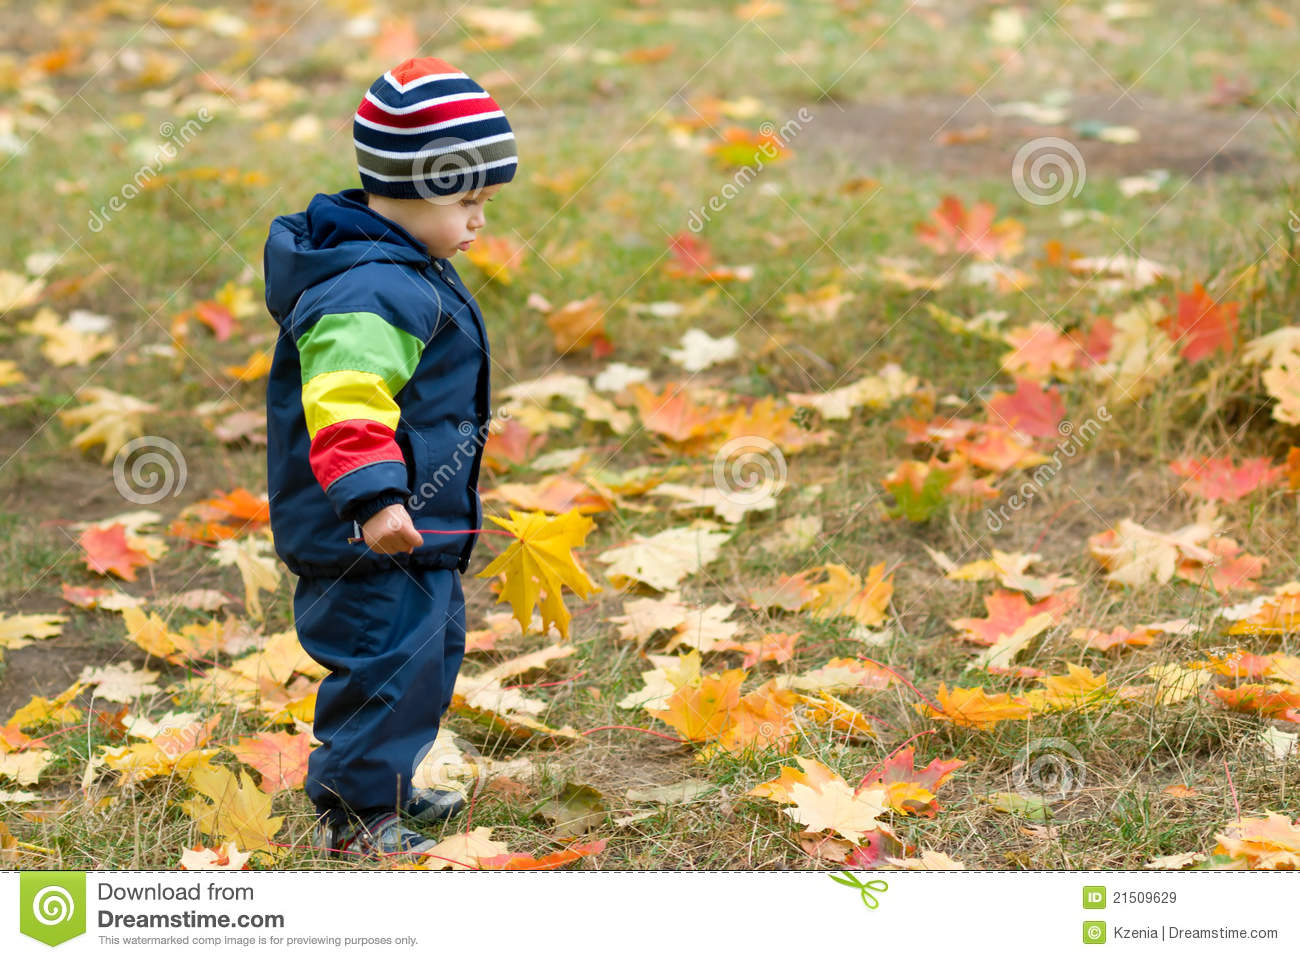 Cute boy and falling leaves